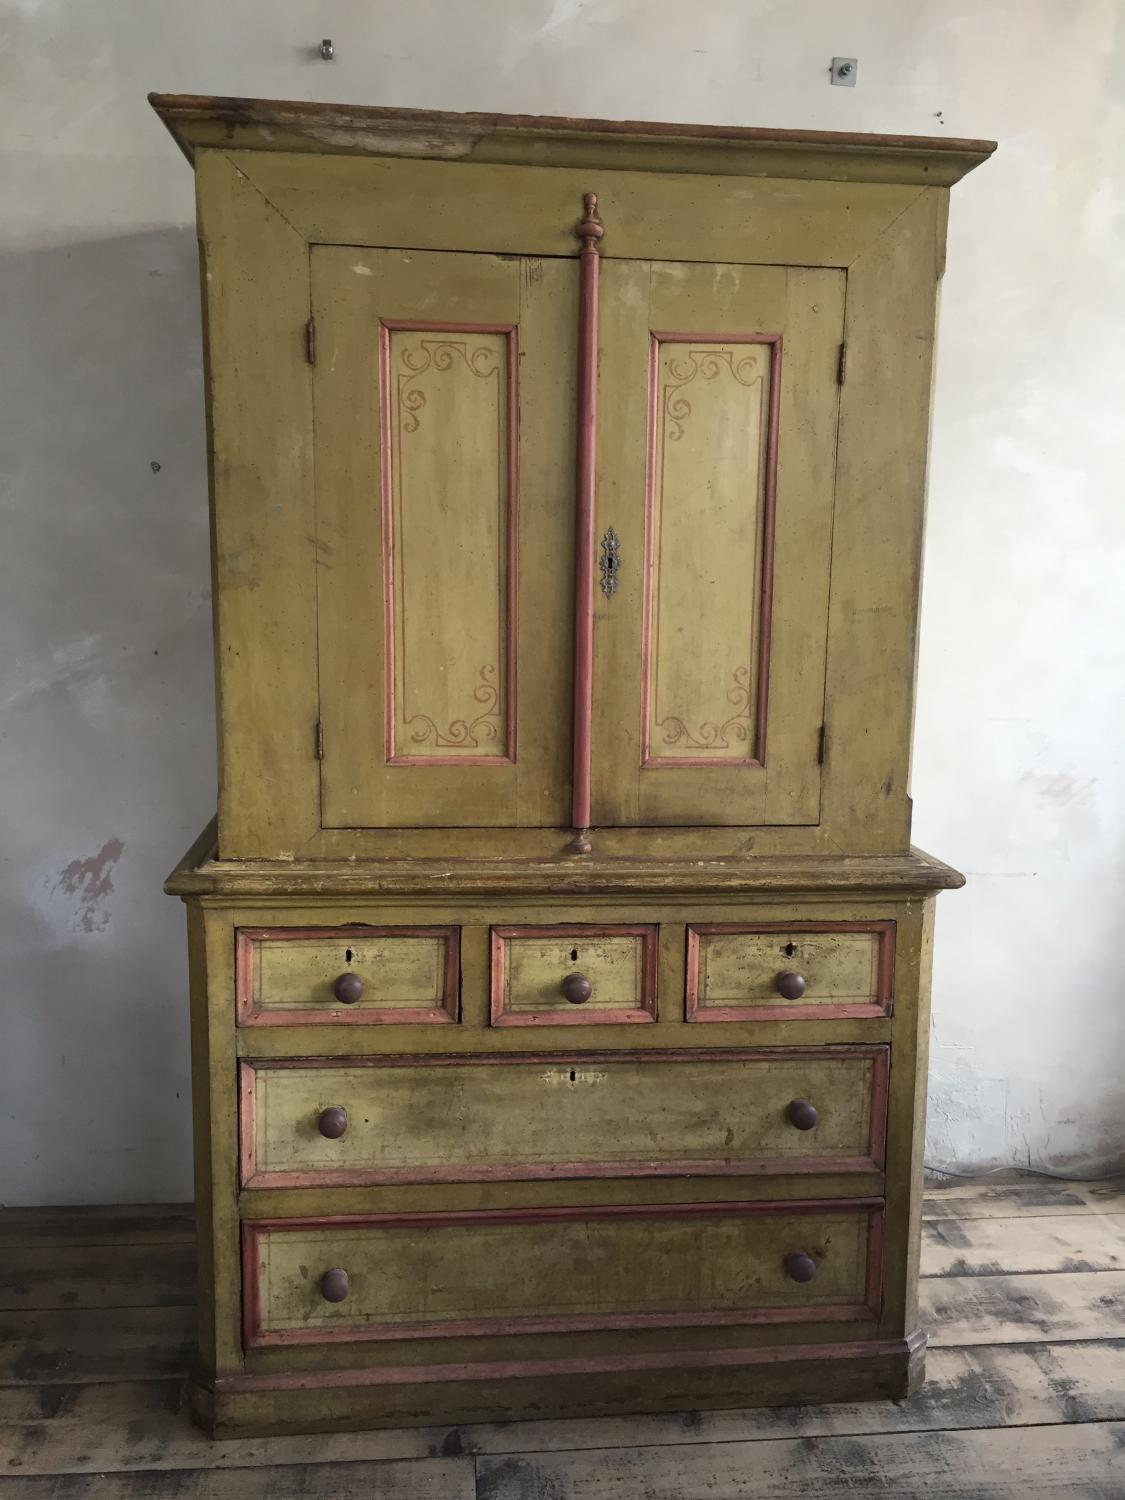 Early 19th C French Painted linen press